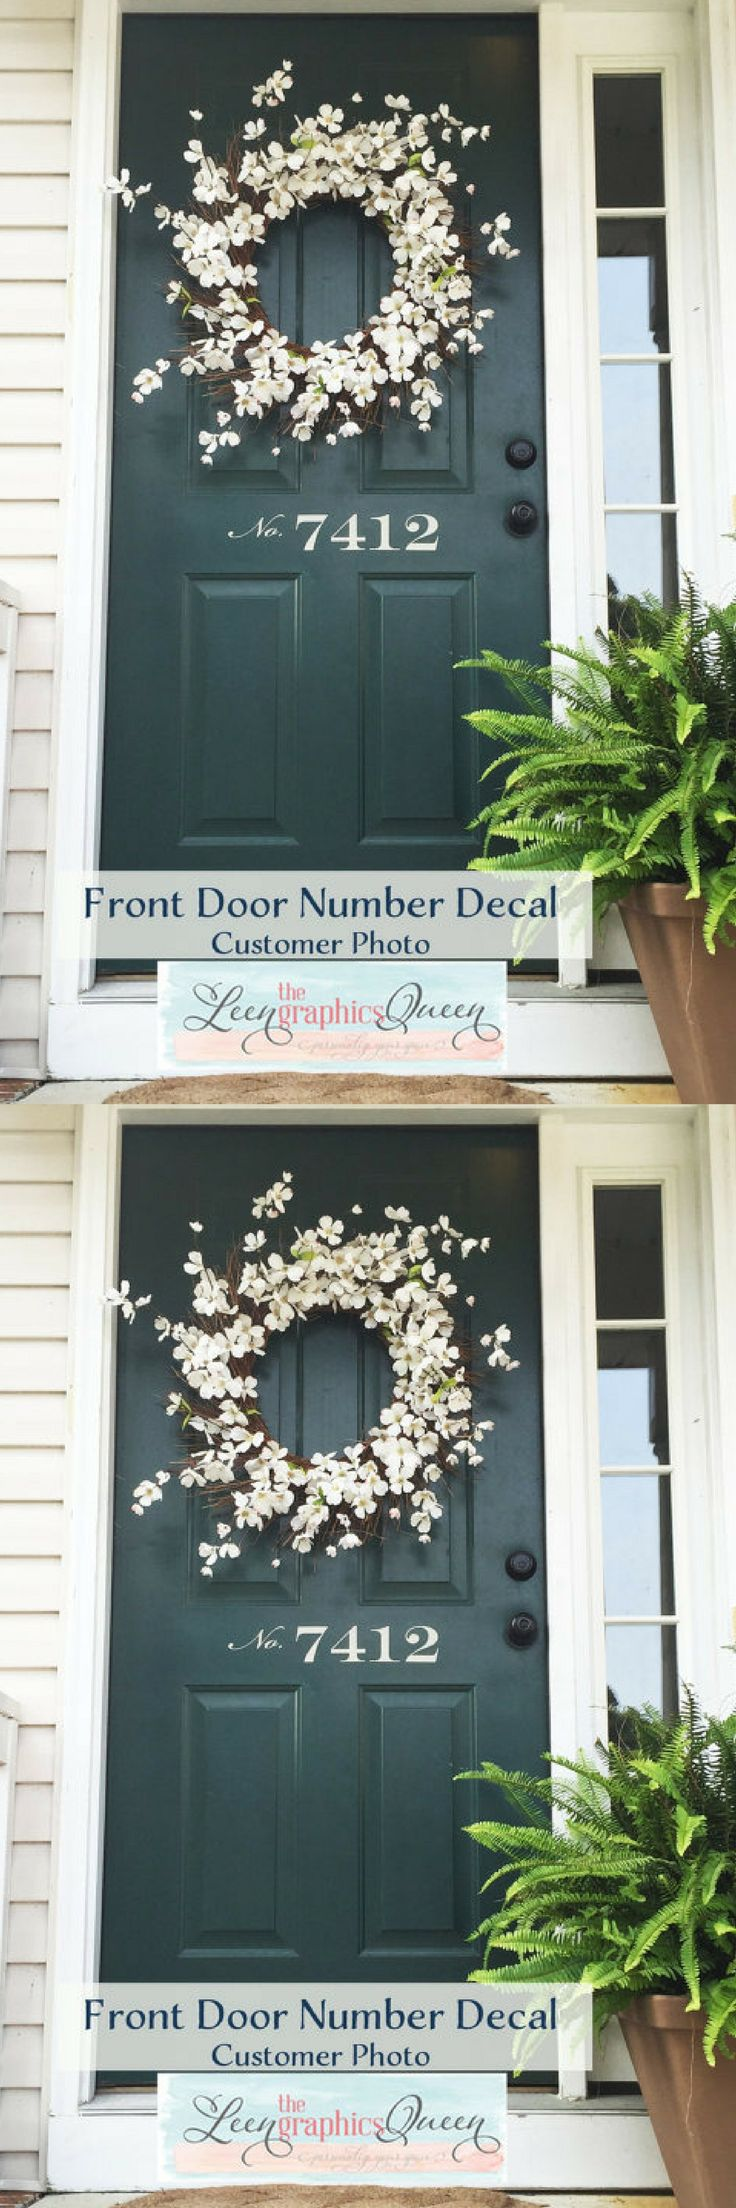 Best 25+ Door numbers ideas on Pinterest | Signage light, Sign and ...